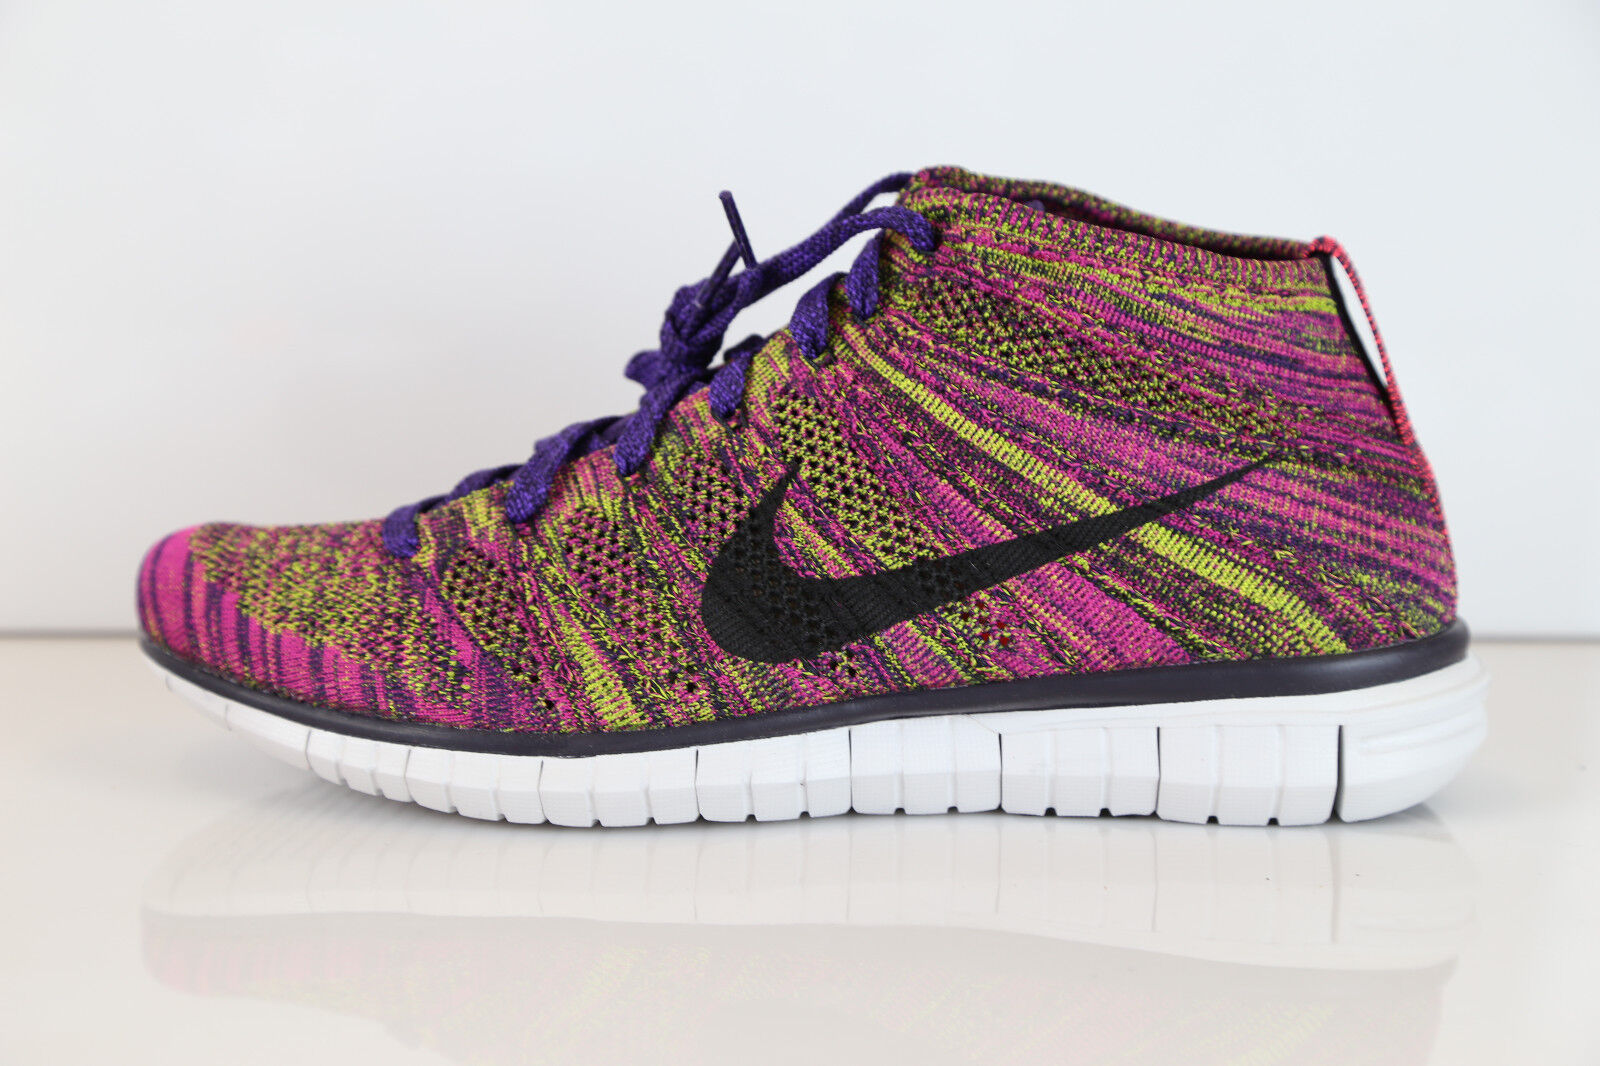 Nike Free Flyknit Chukka Grand Purple Fireberry 639700-501 10-12 htm 1 3